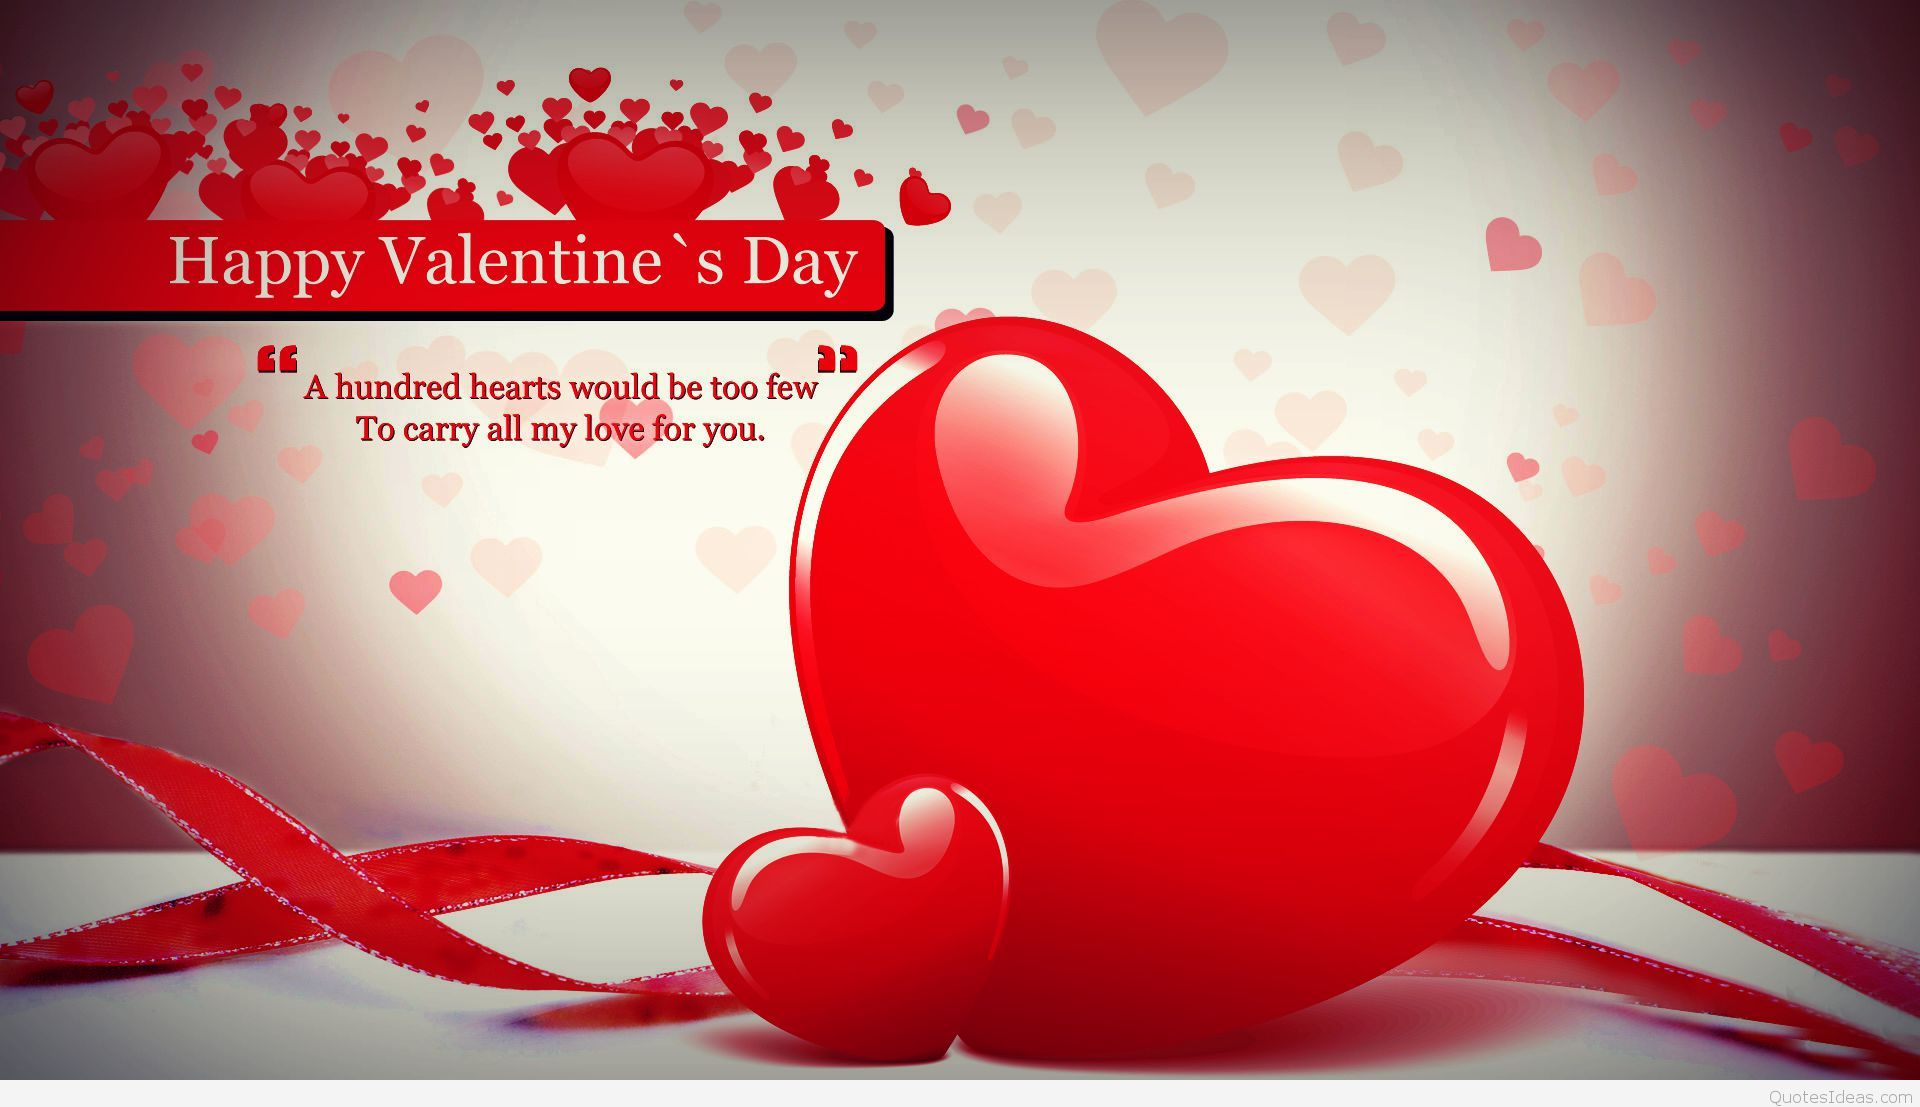 Happy Valentines Day Love Messages Best Quotes Hd Wallpaper